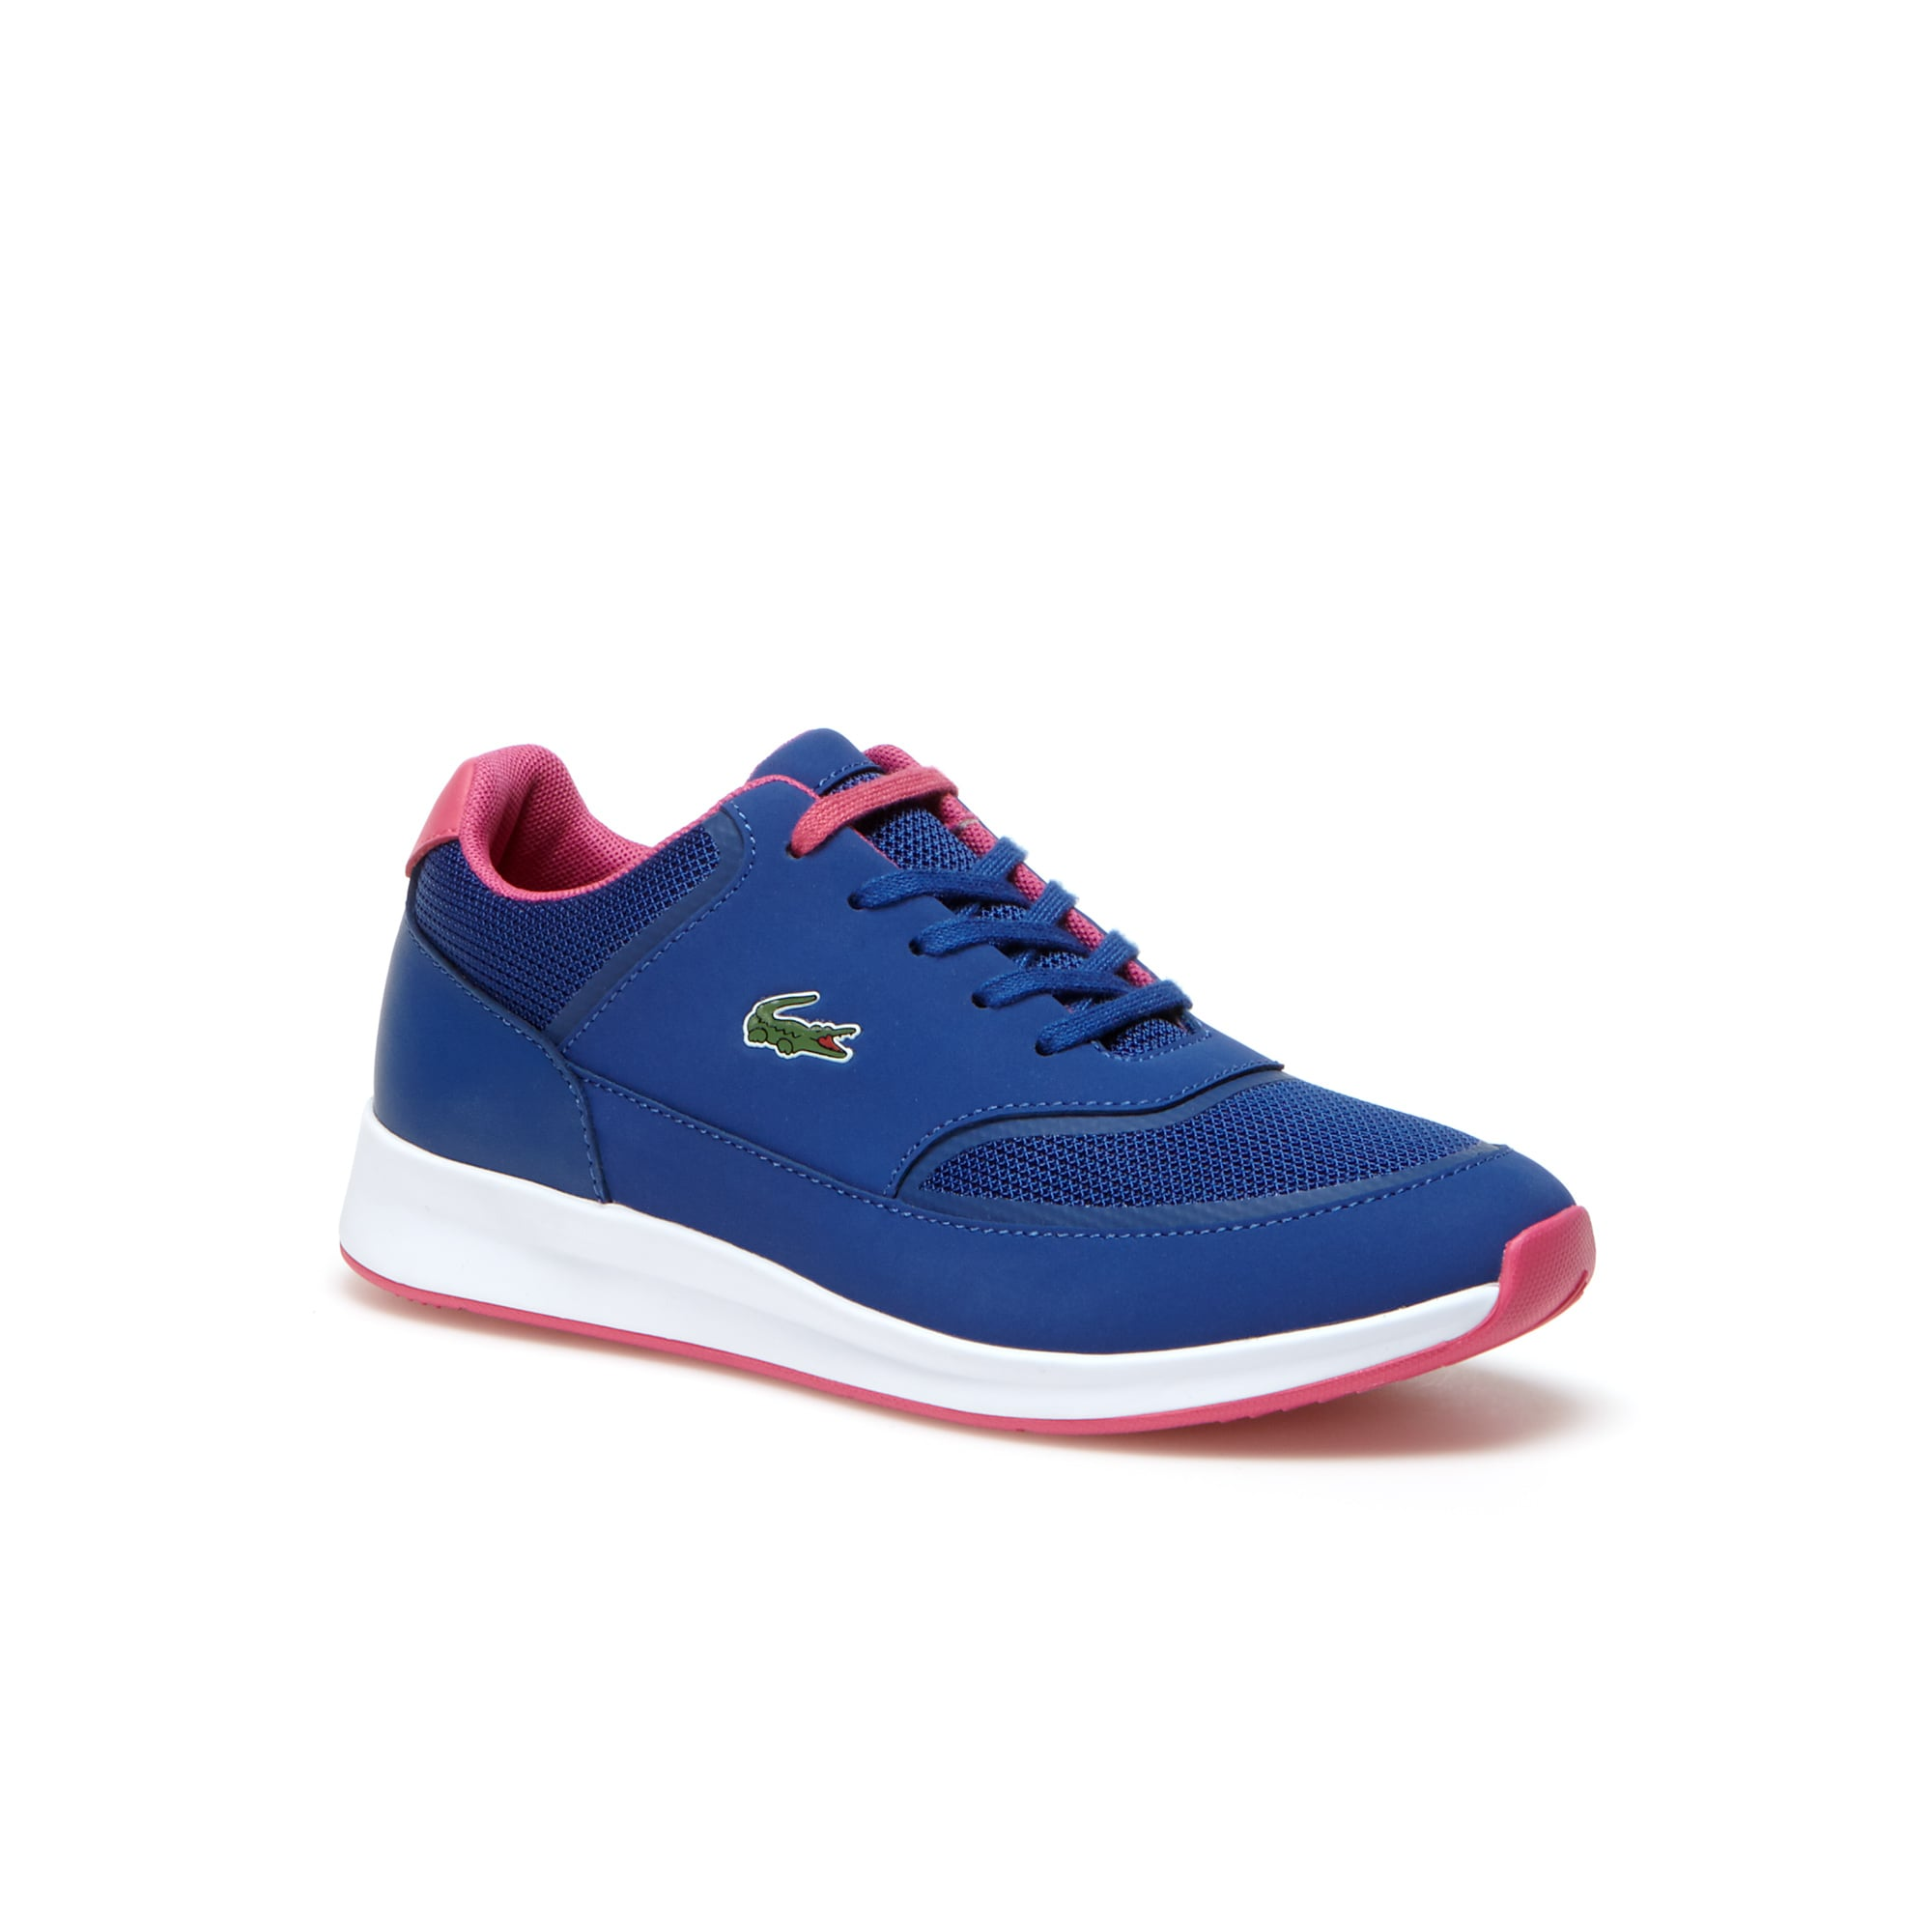 Women's Chaumont Lace Bi-Material Technical Canvas Sneakers